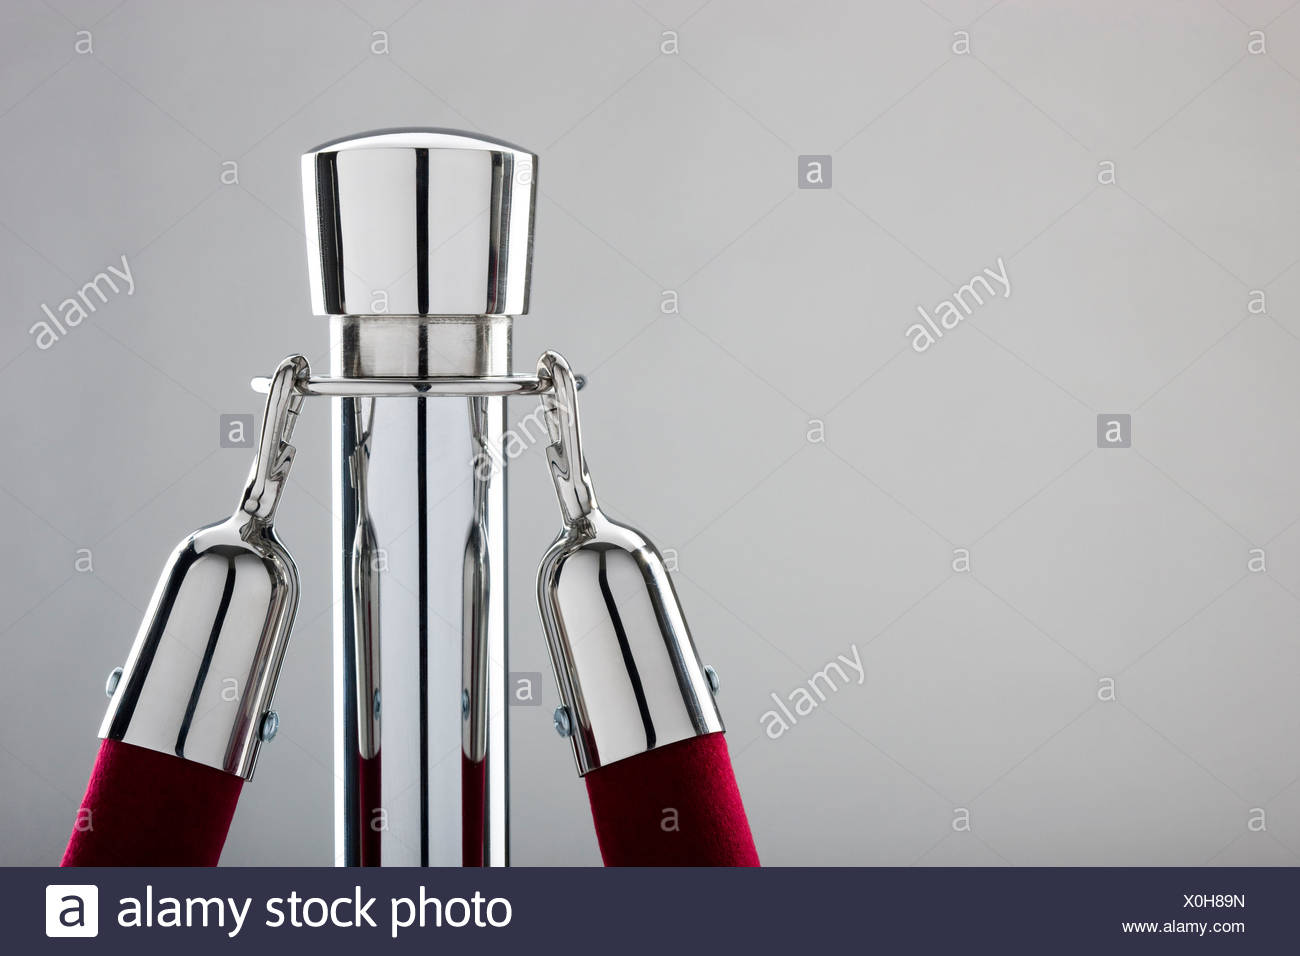 rope stand with a velvet rope attached - Stock Image